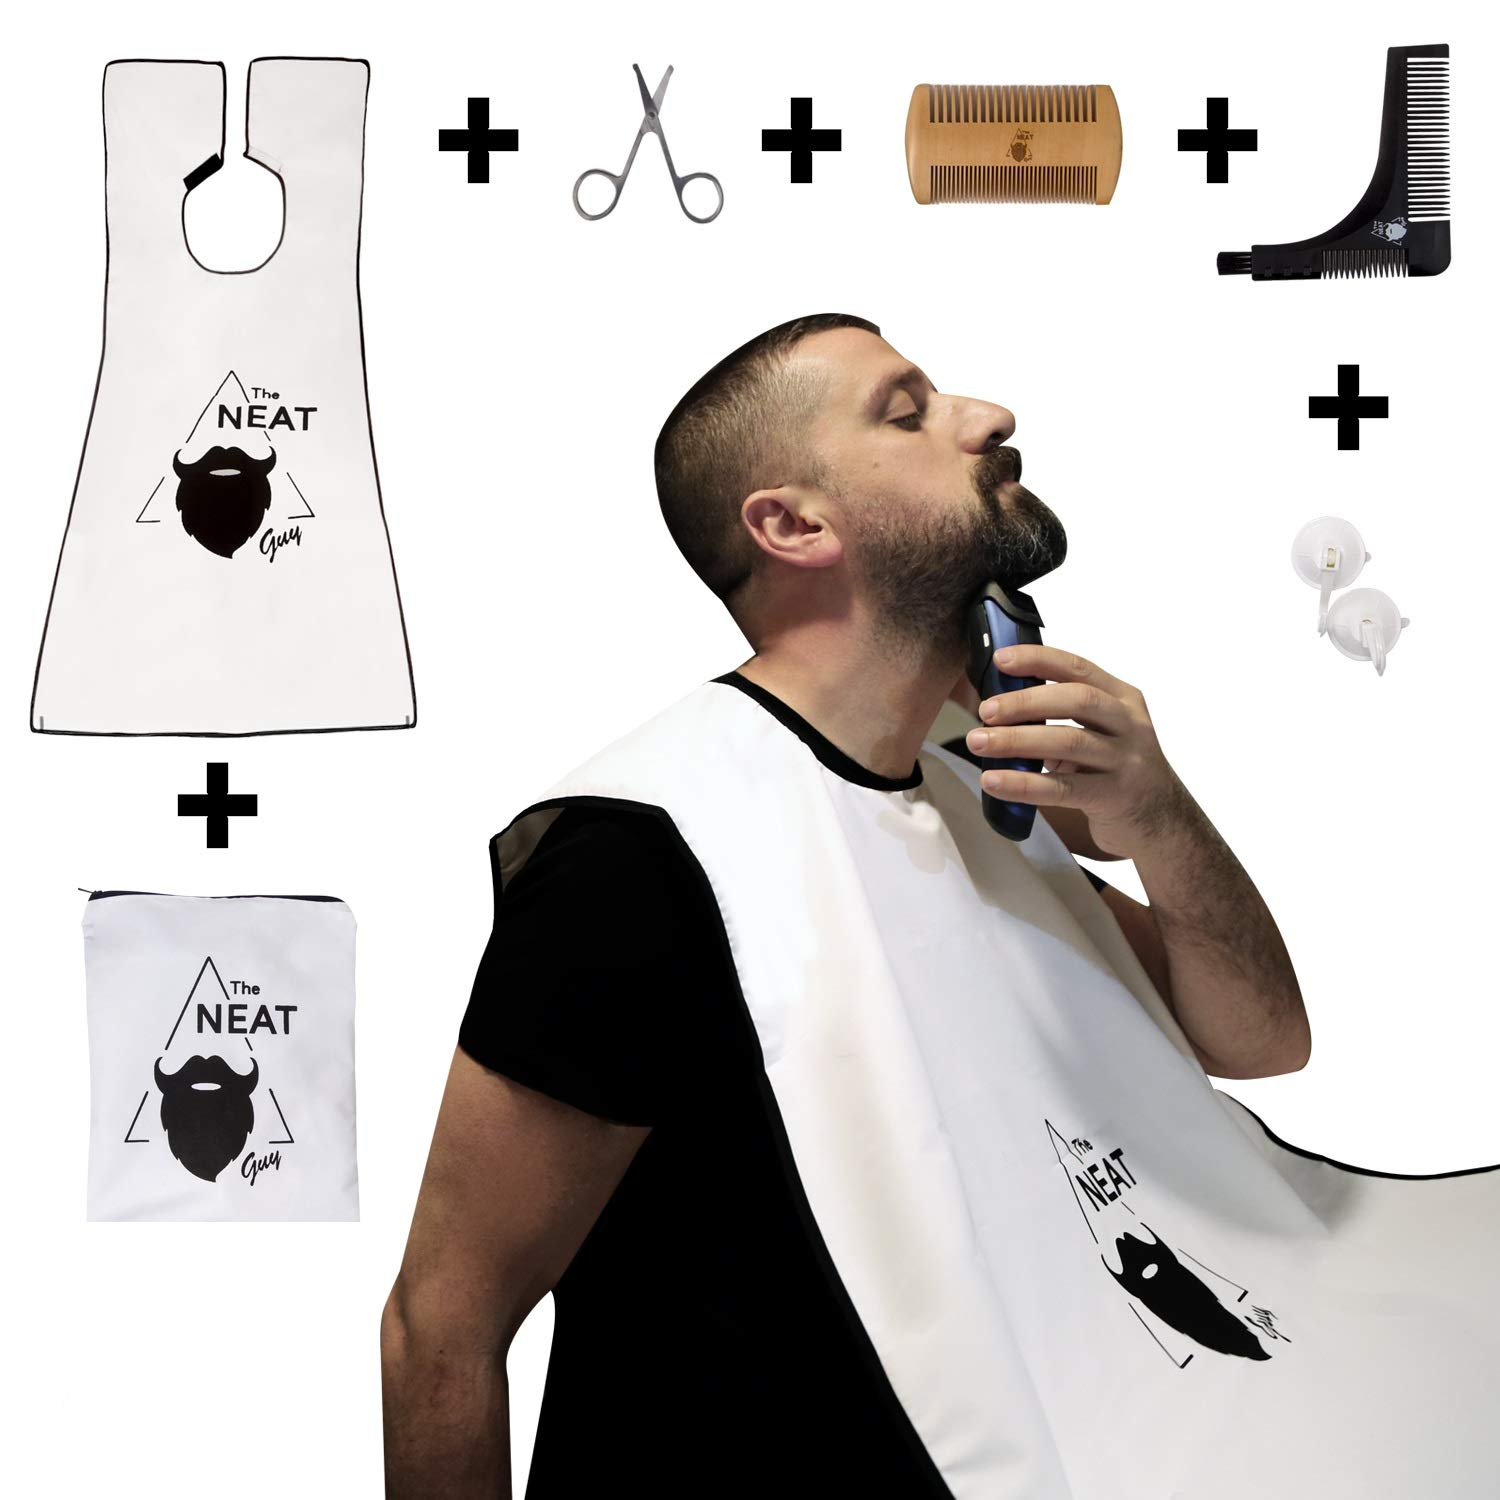 The Neat Guy 6-PACK Beard Kit with Beard Apron / Bib for Mess-Free Shaving + Shaping Tool + valentines + Comb + Scissor + Bag, All you Need for a Good, Clean Shave, The Perfect Gifts For Husband / Mens